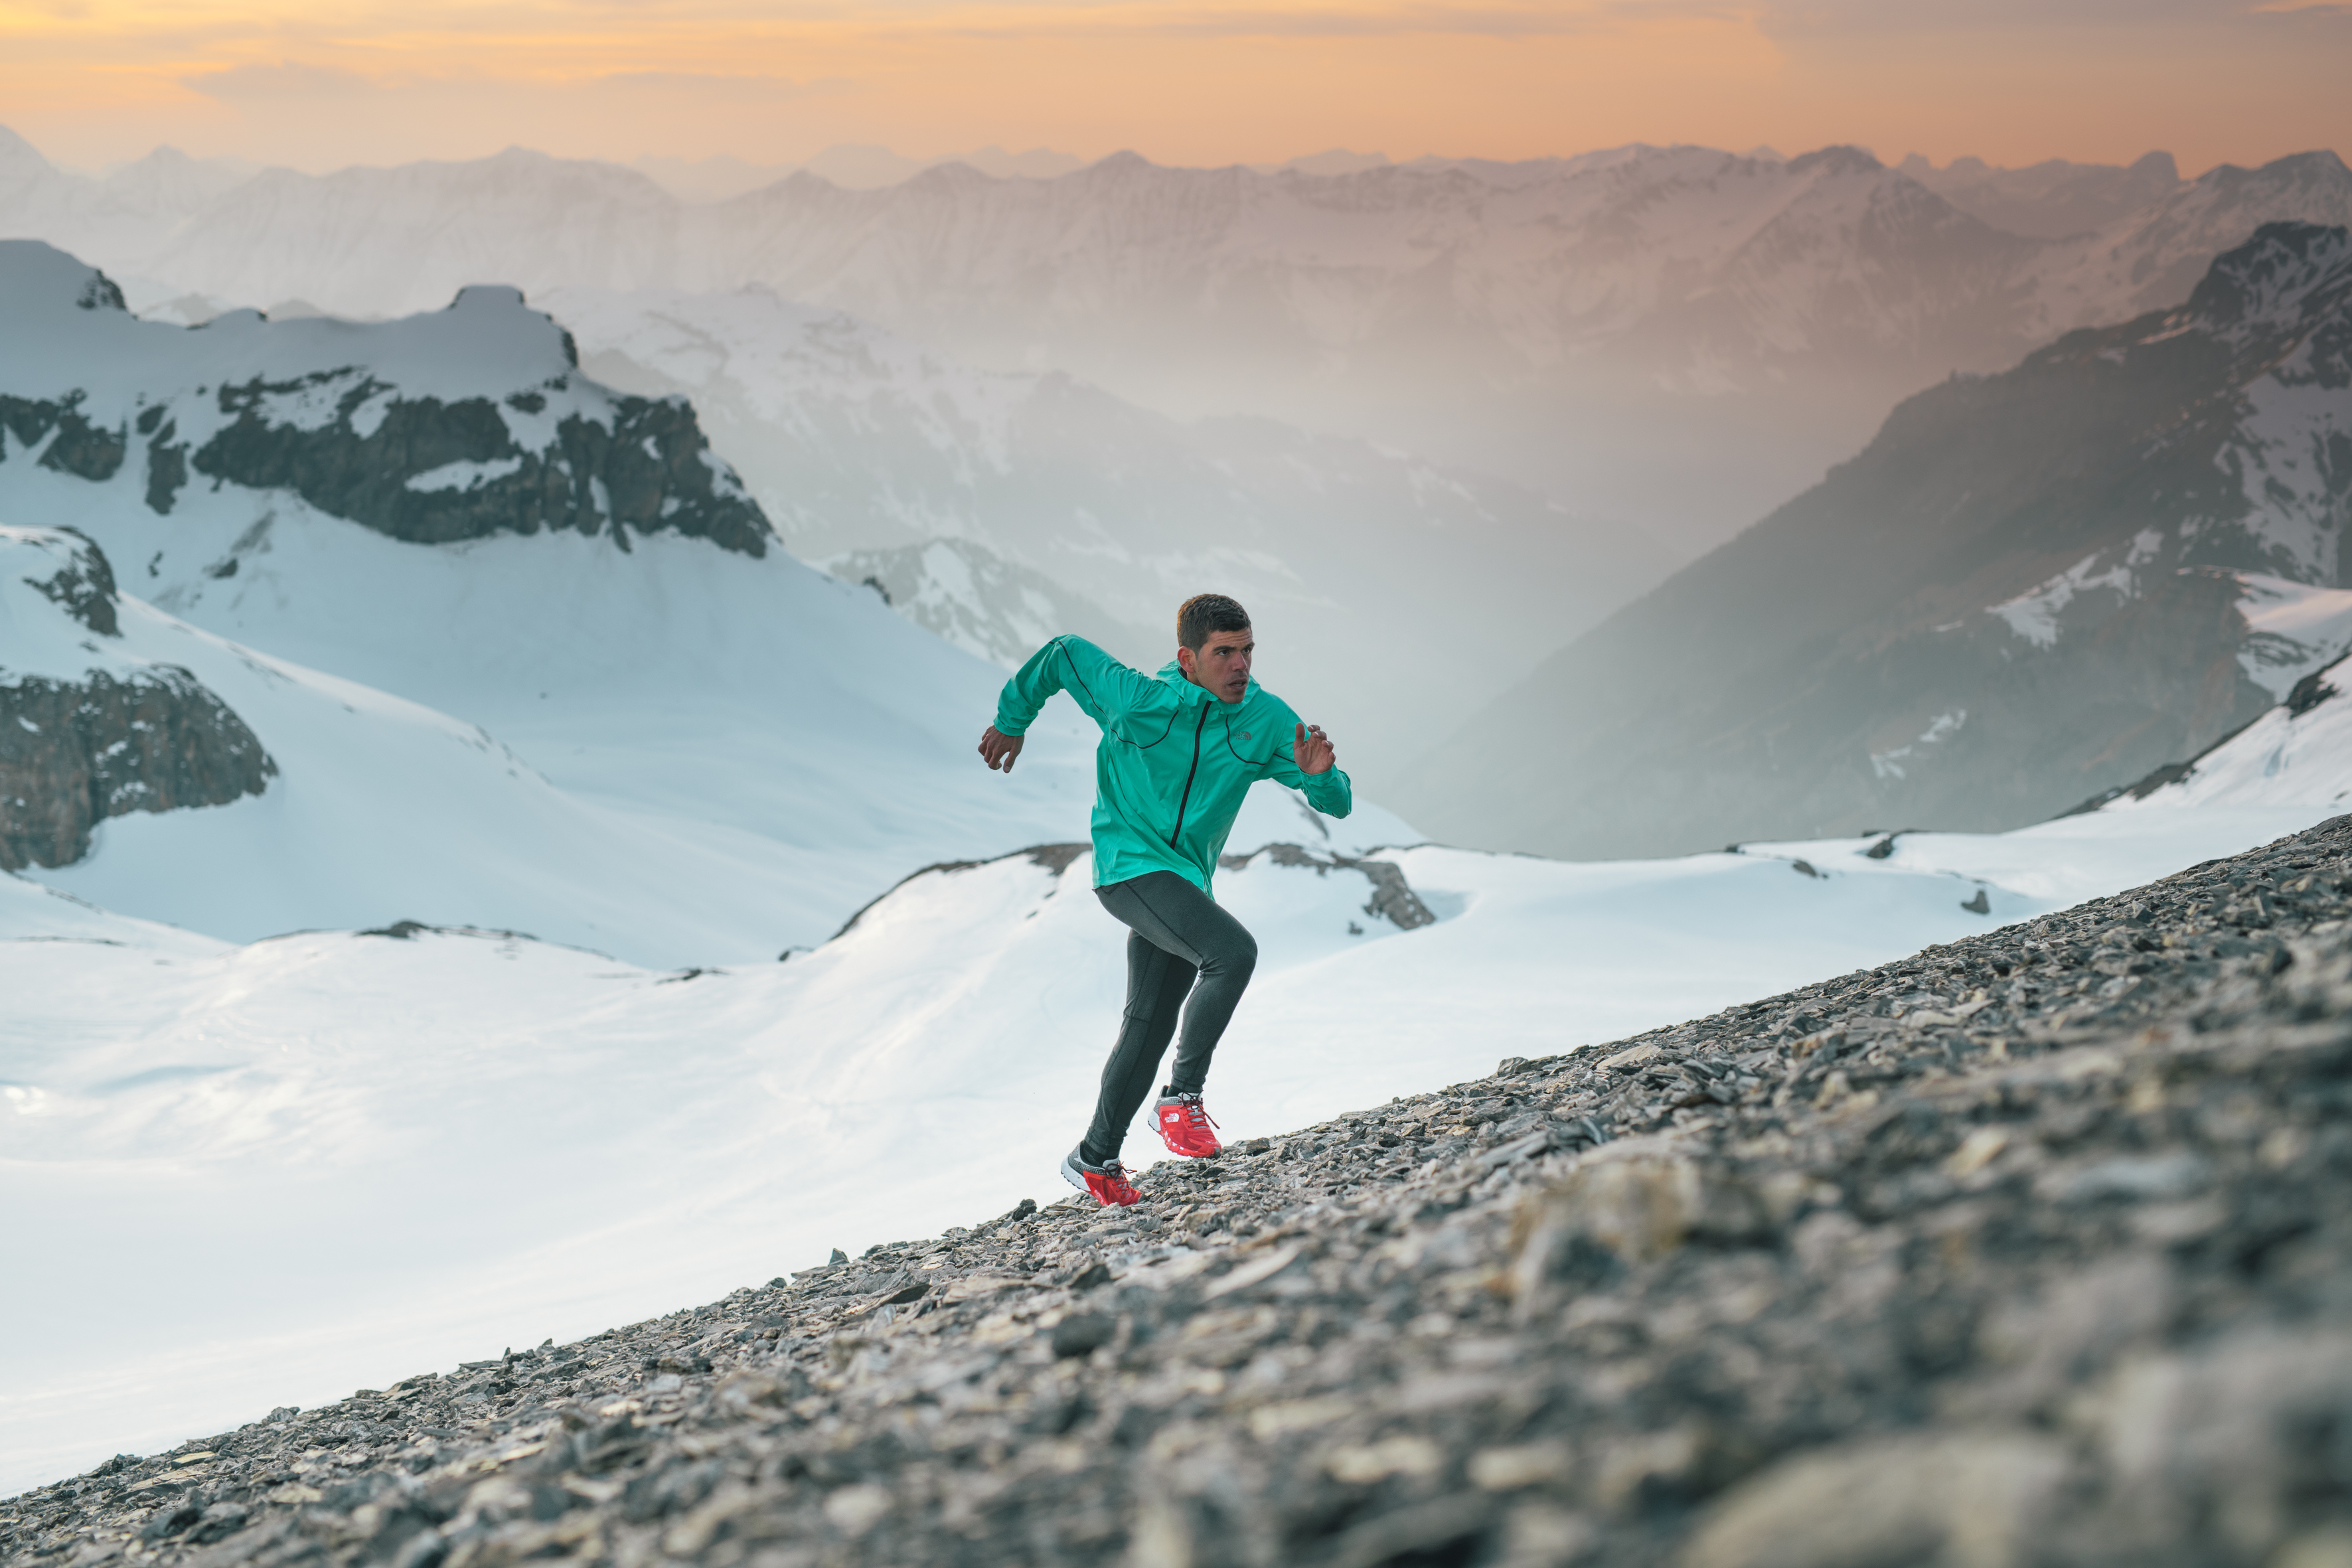 January training kit from The North Face to help you get outside